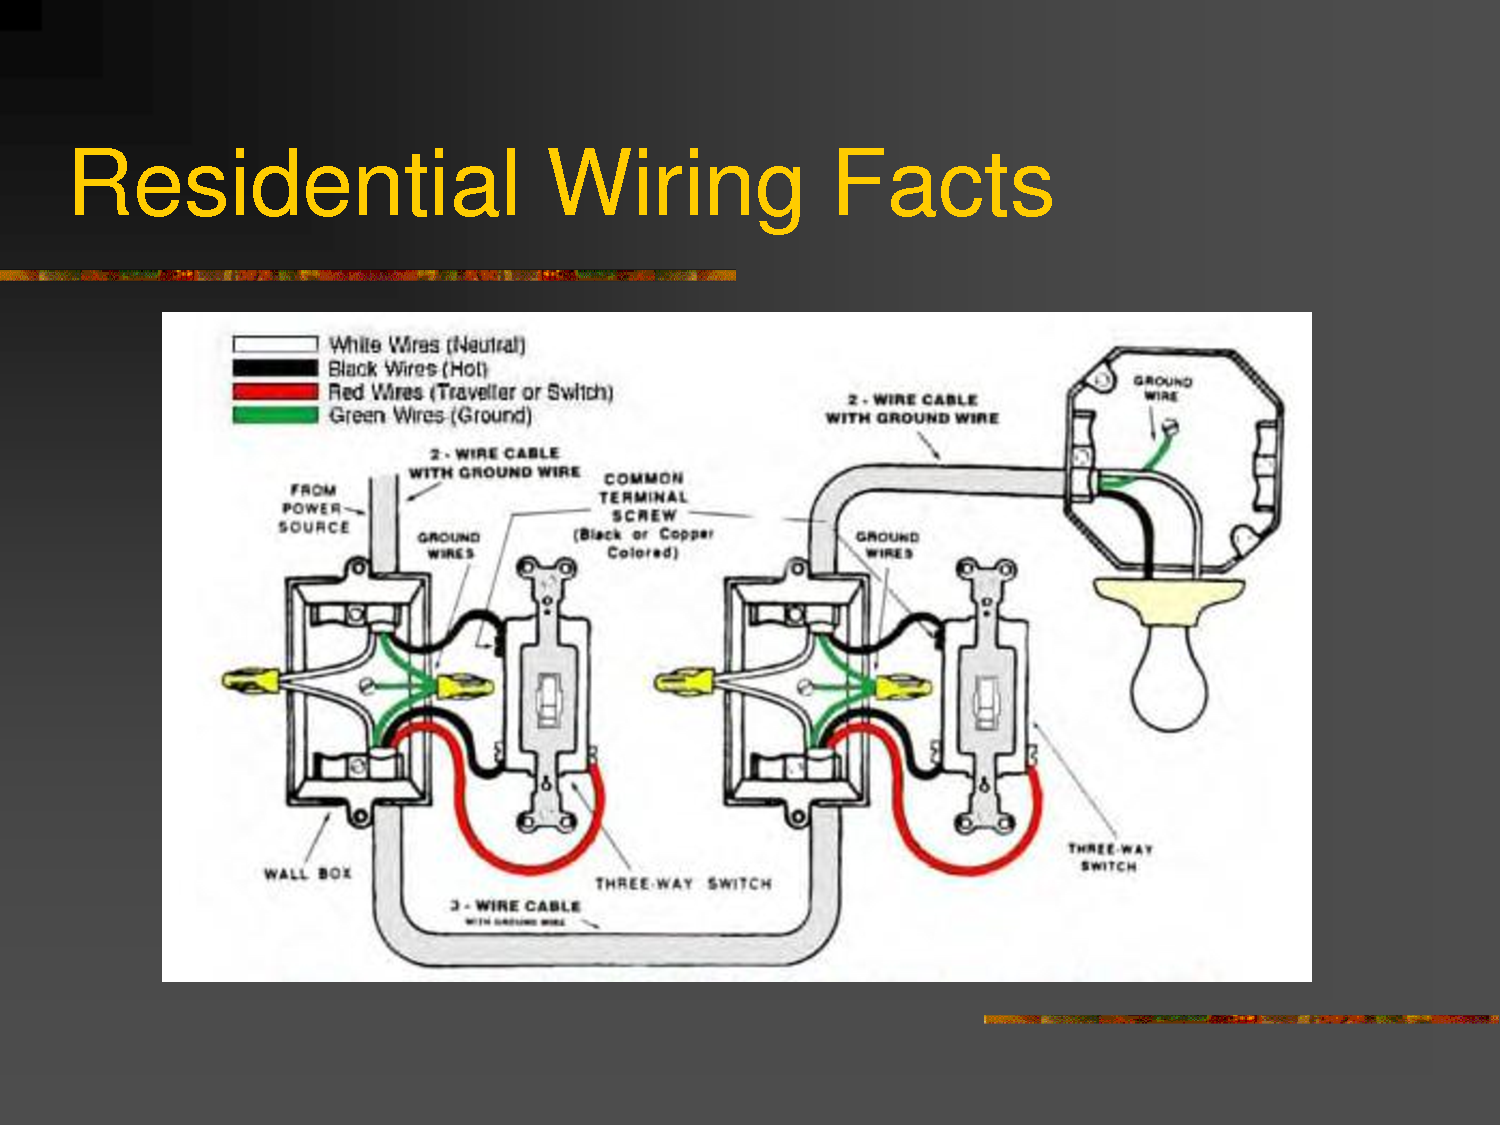 nett home wiring tips bilder verdrahtungsideen korsmi info rh korsmi info new home wiring tips home wiring tips in hindi